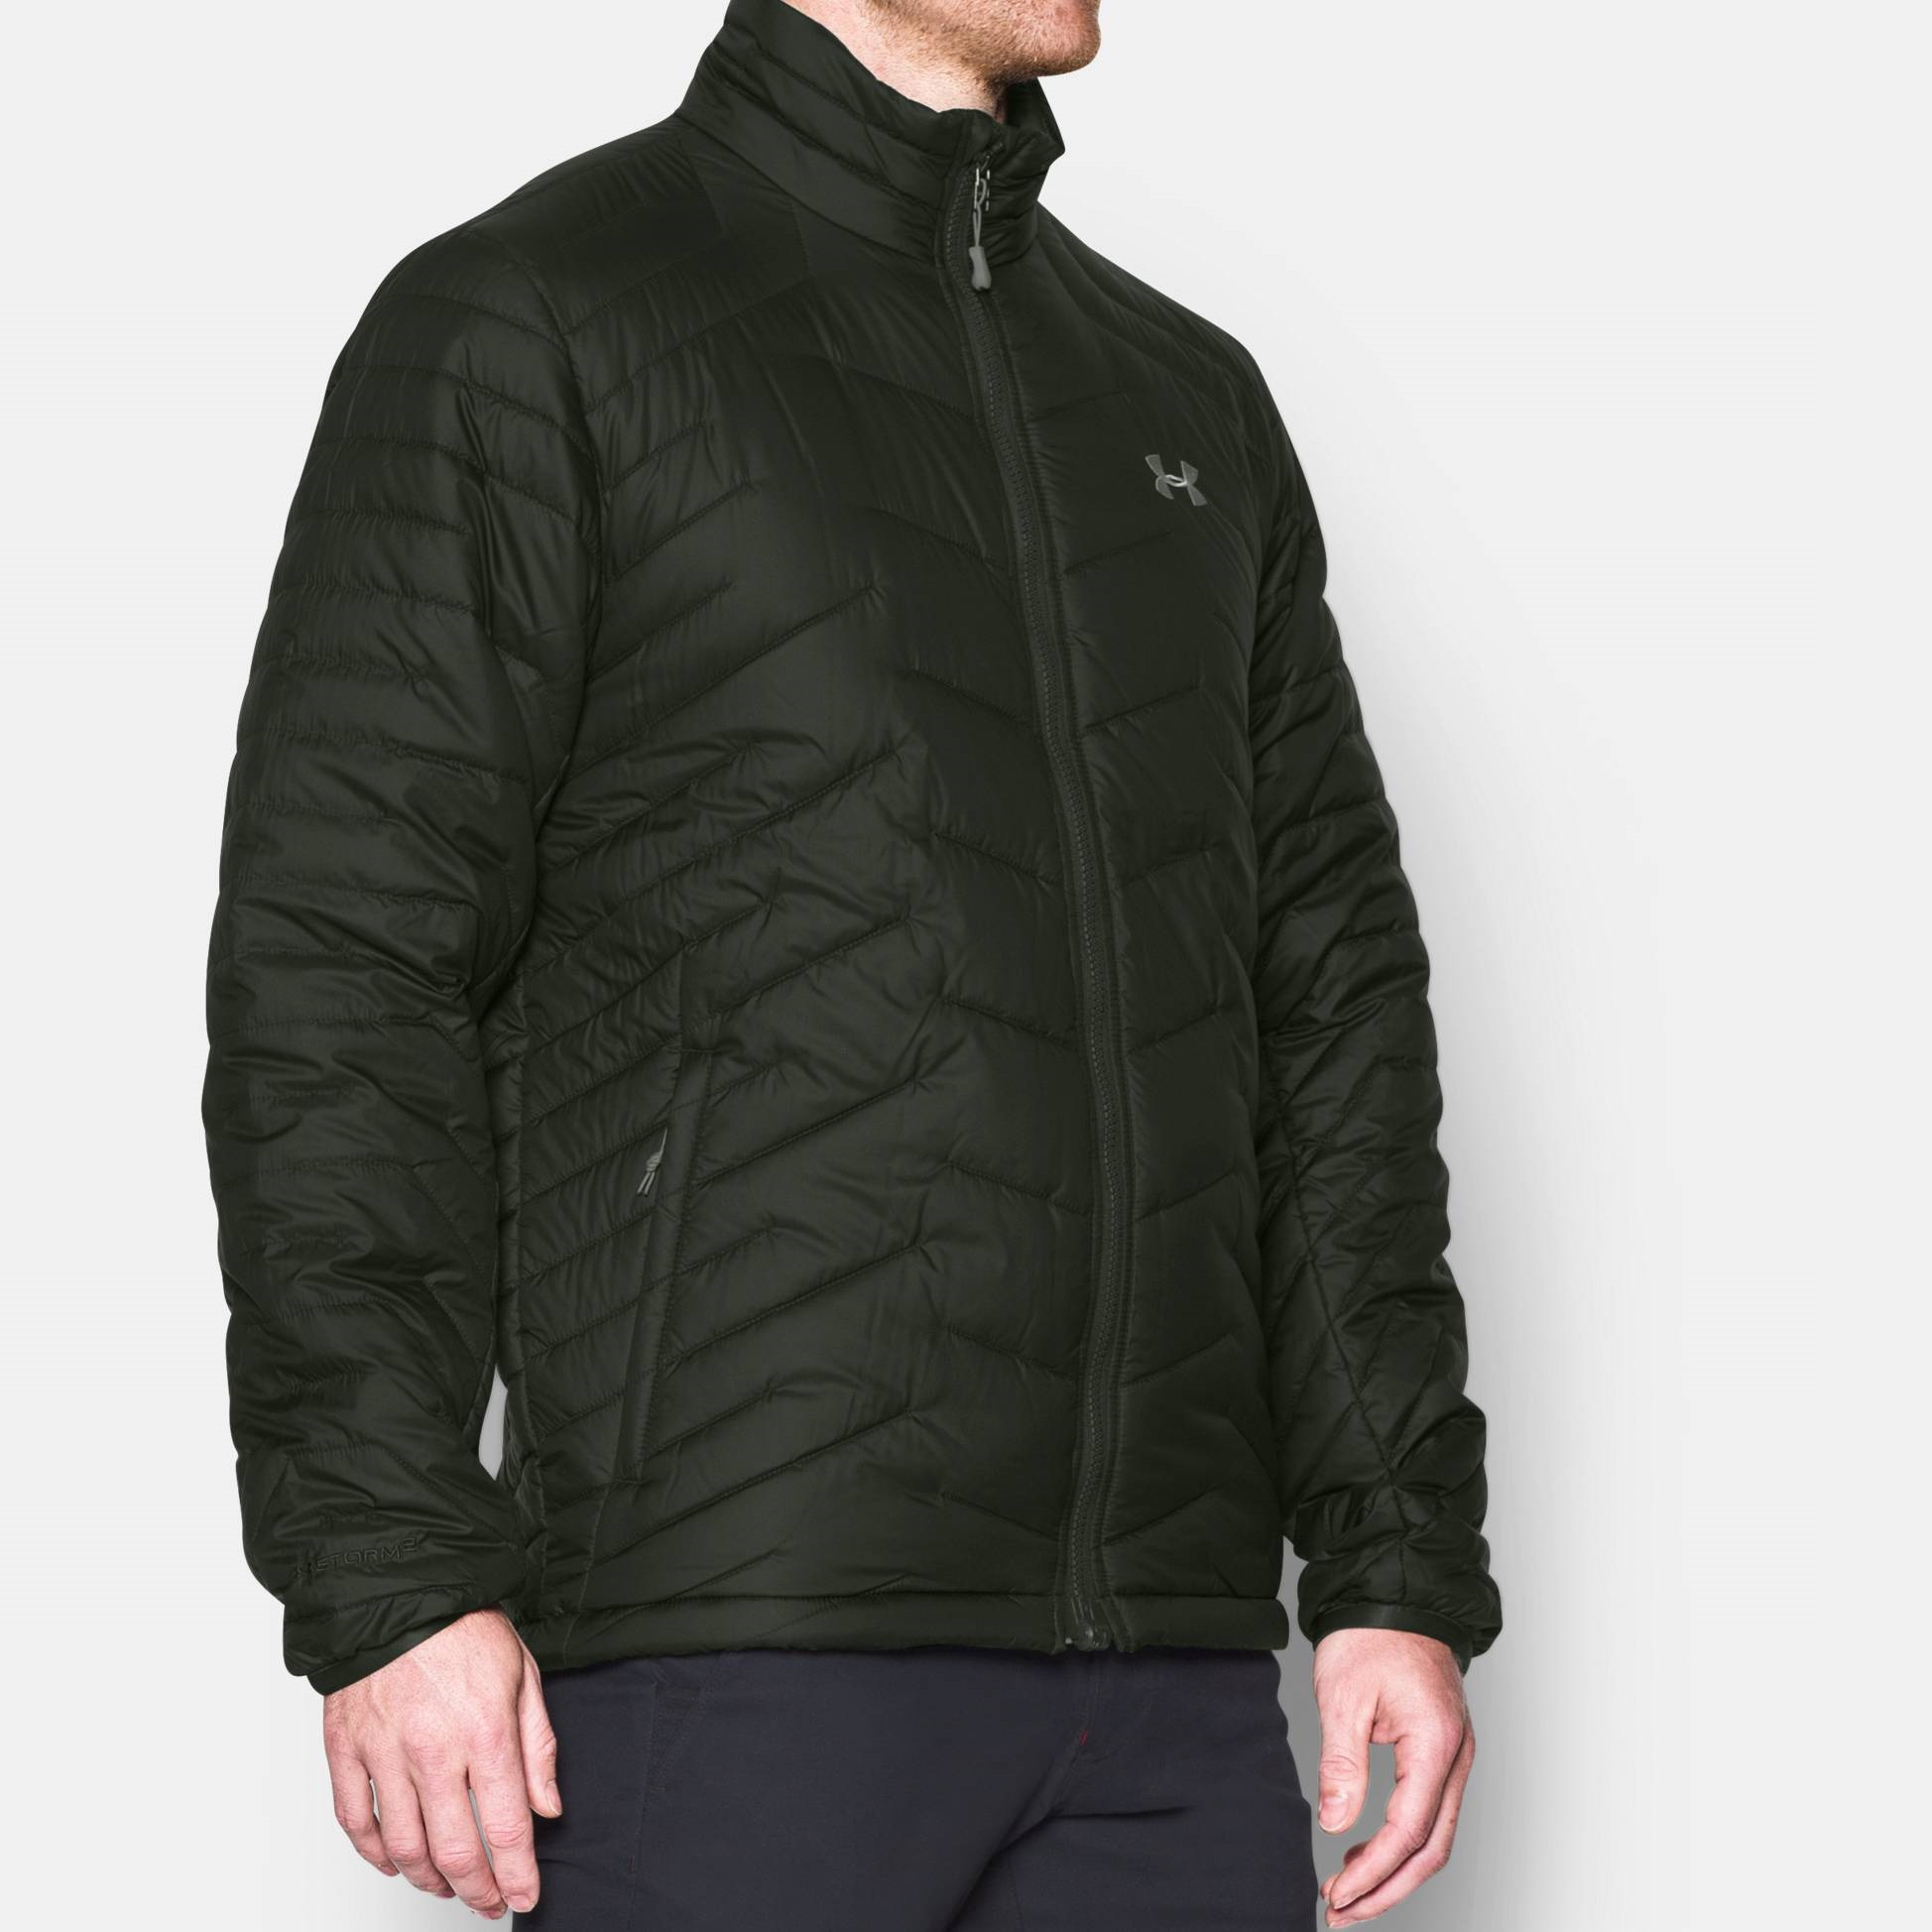 Clothing -  under armour ColdGear Reactor Jacket 0823